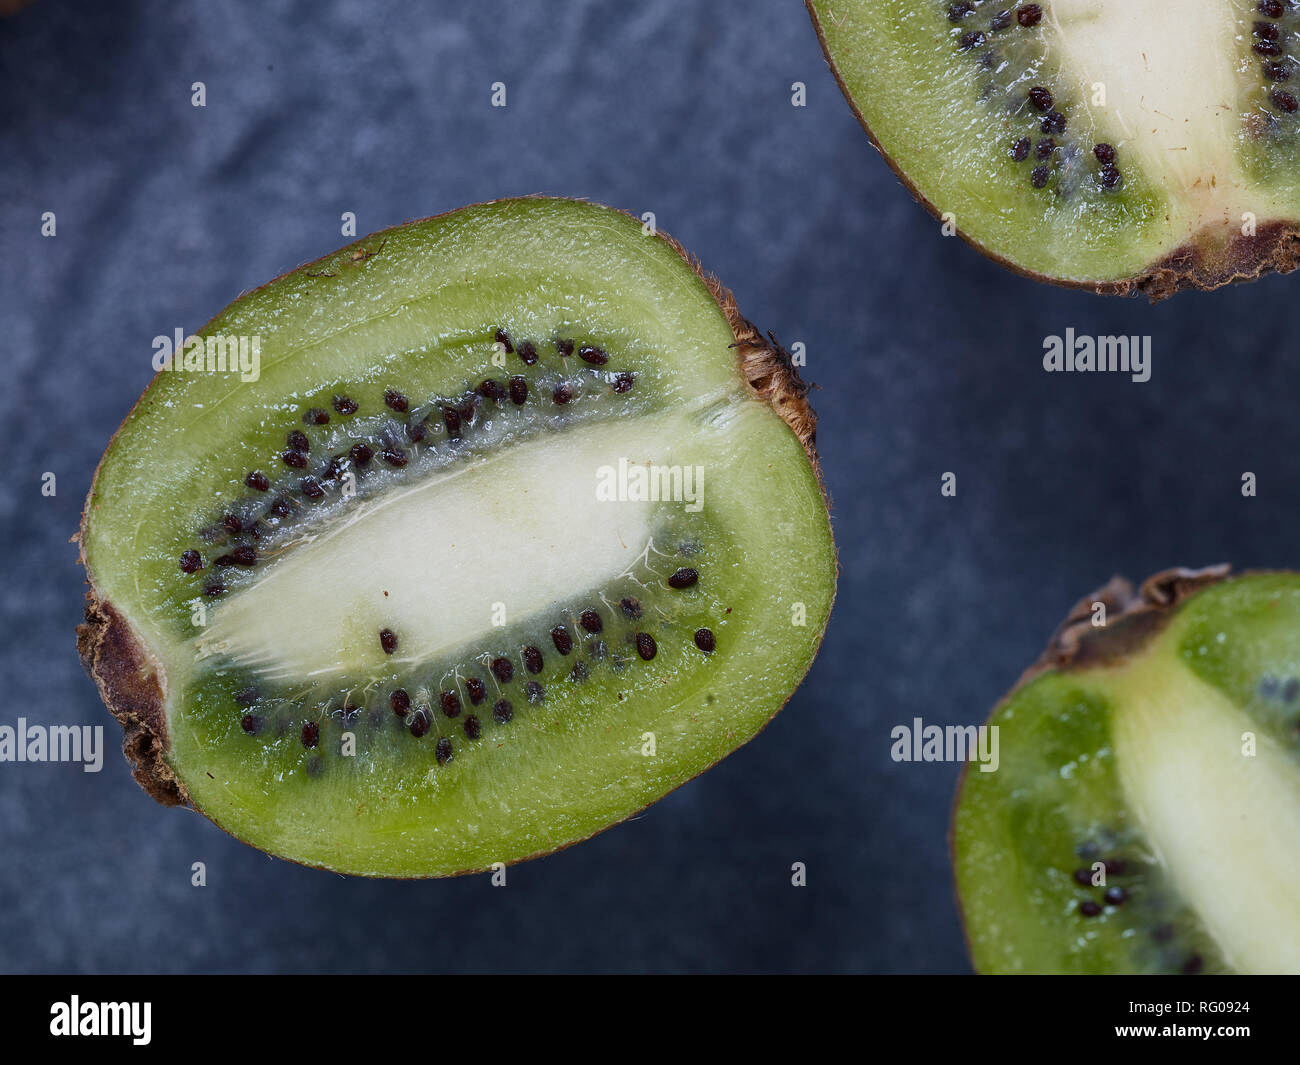 Cut Kiwi-fruit against black background still-life food photograph - Stock Image